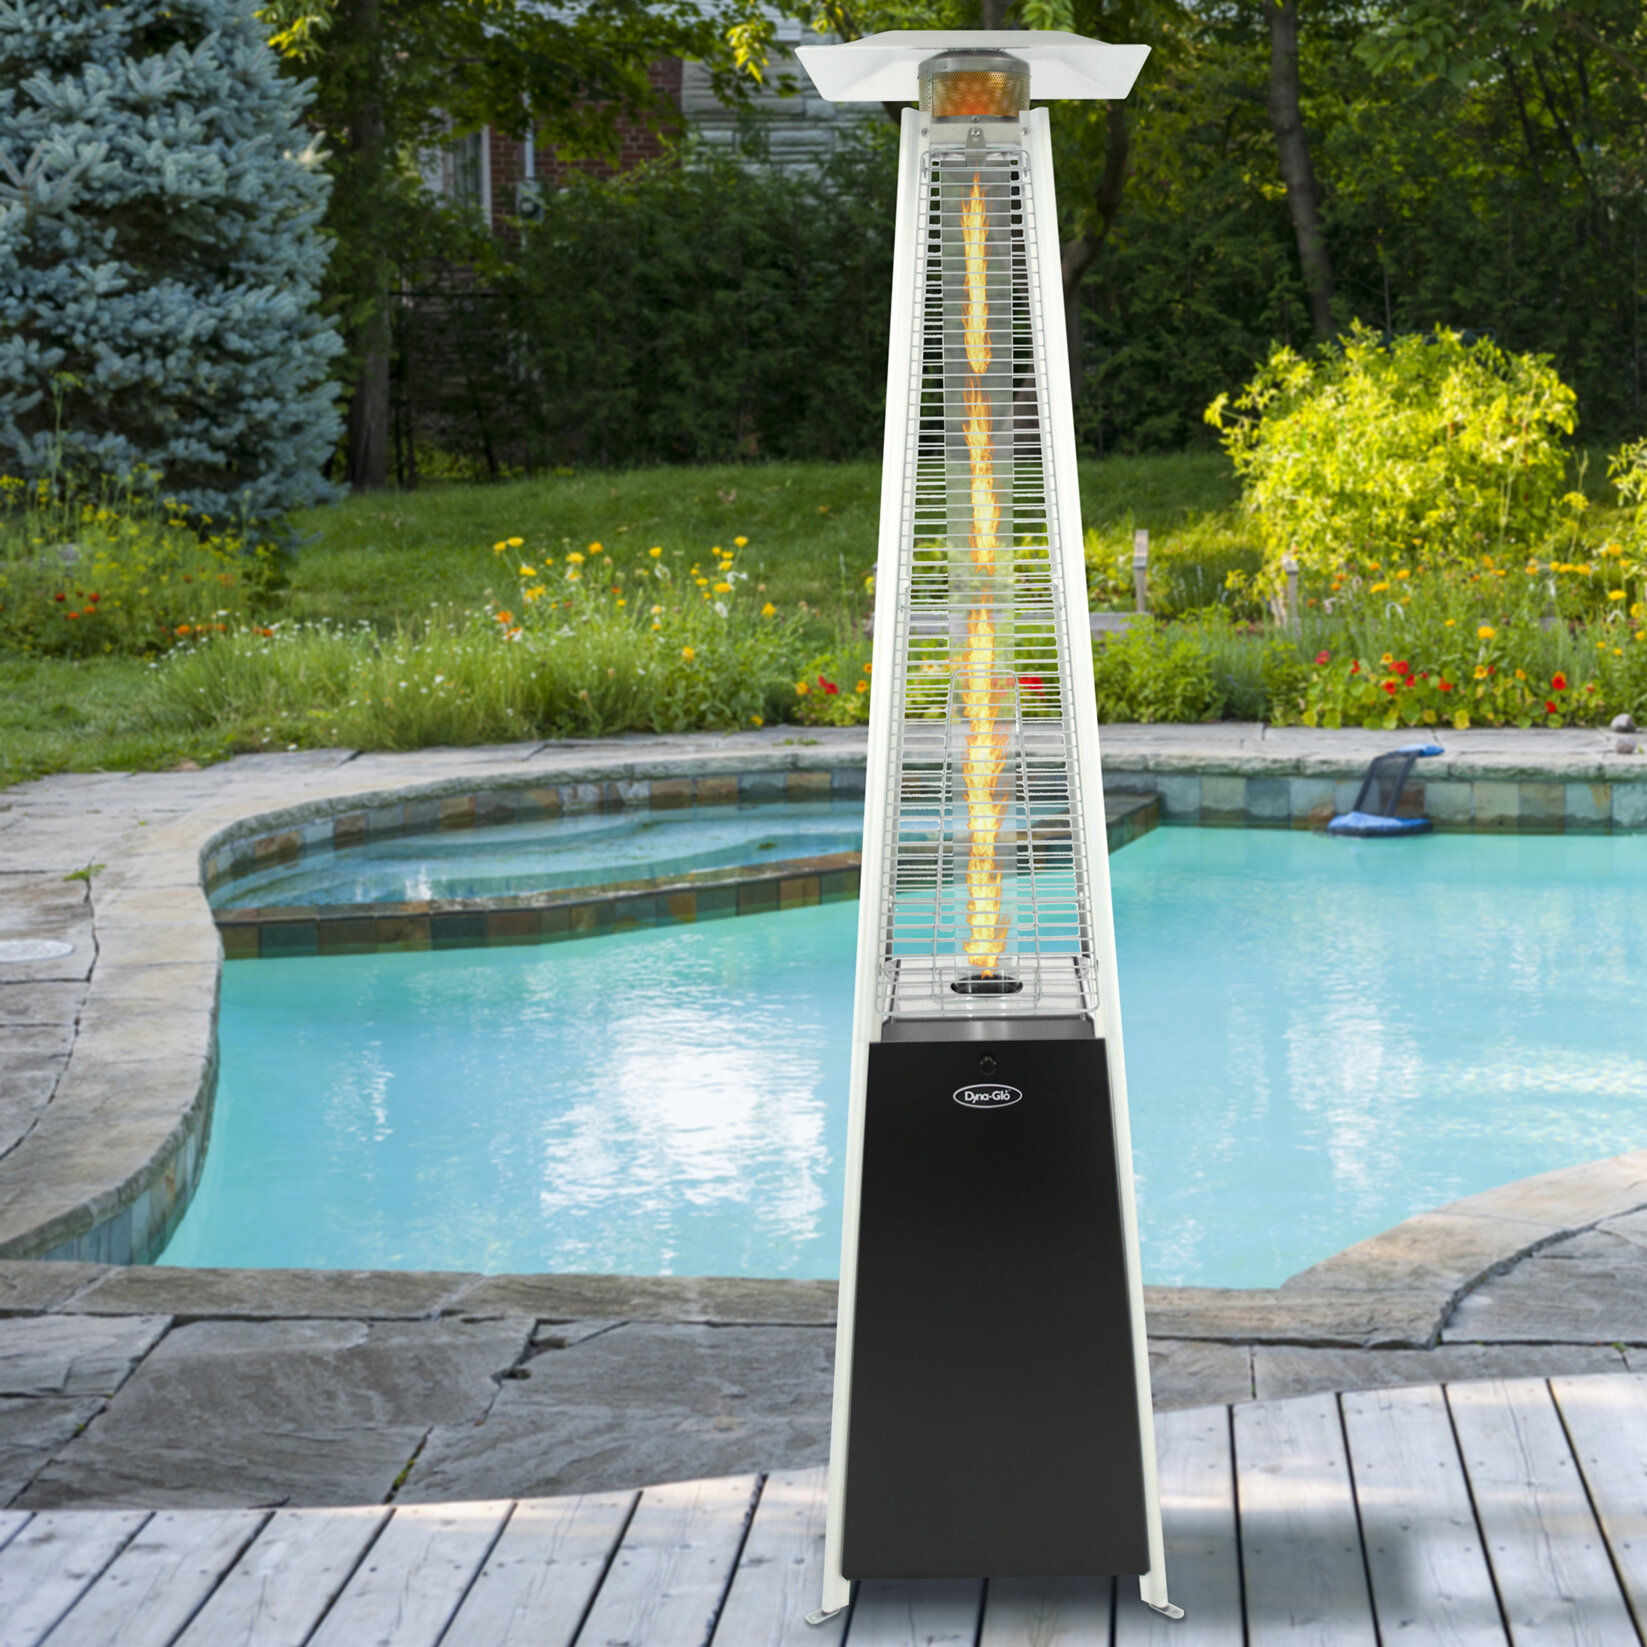 Dyna Glo Pyramid Flame 42 000 BTU Propane Patio Heater & Reviews